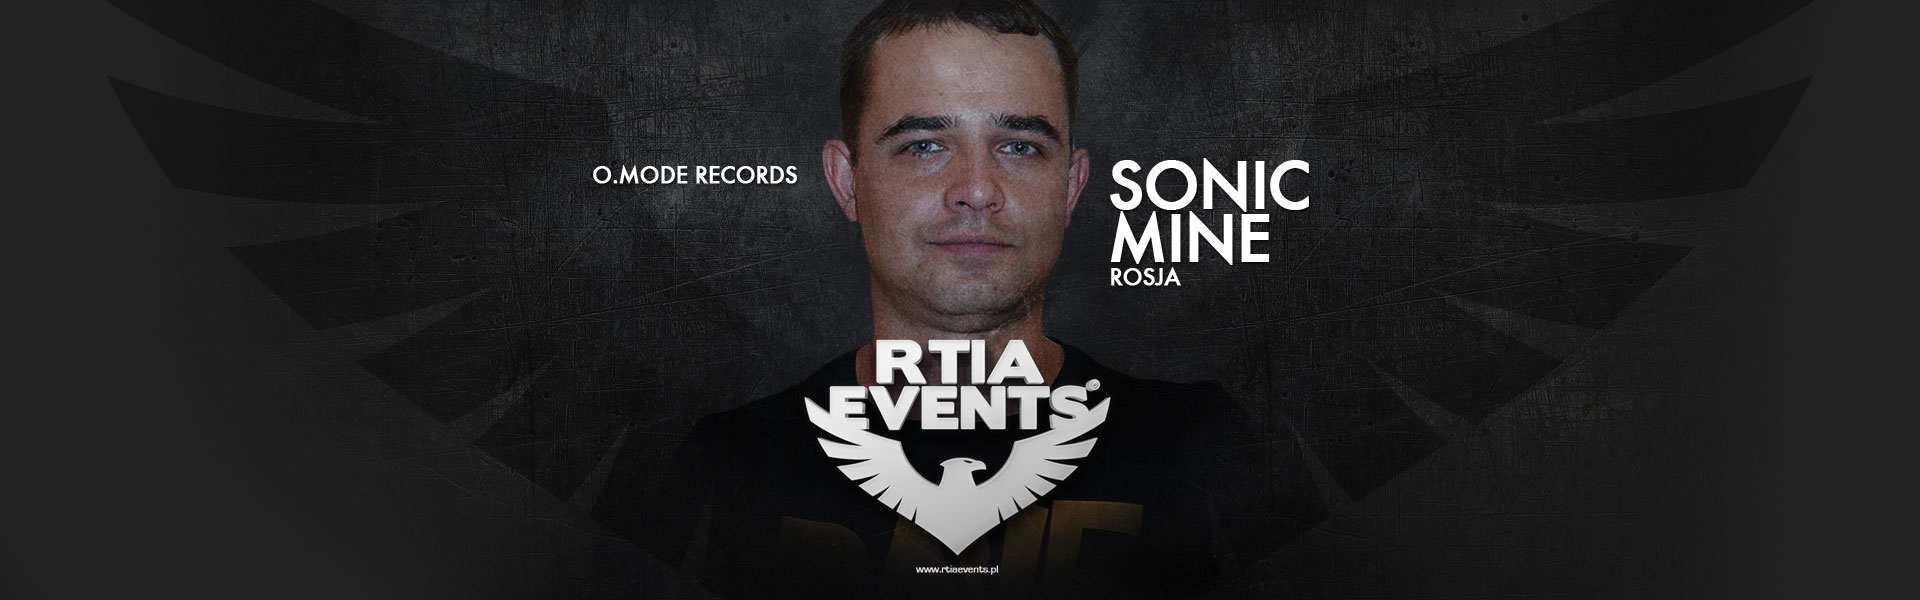 http://www.rtiaevents.pl/wp-content/uploads/2014/03/sonicmine1.jpg